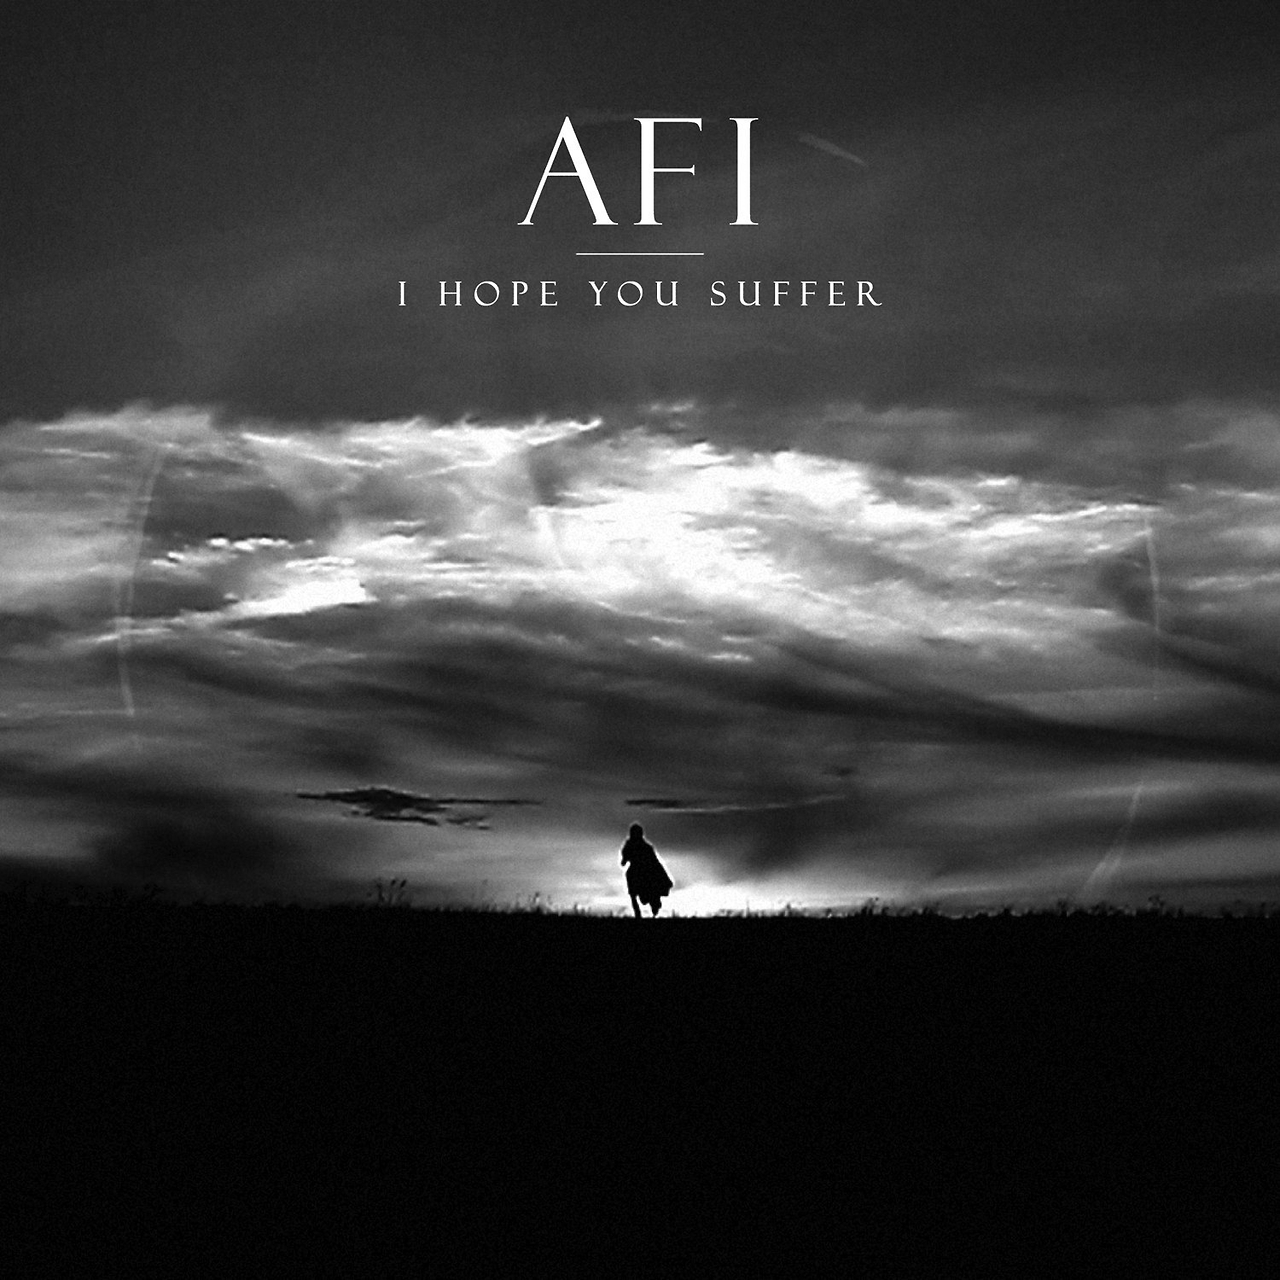 afi-i-hope-you-suffer